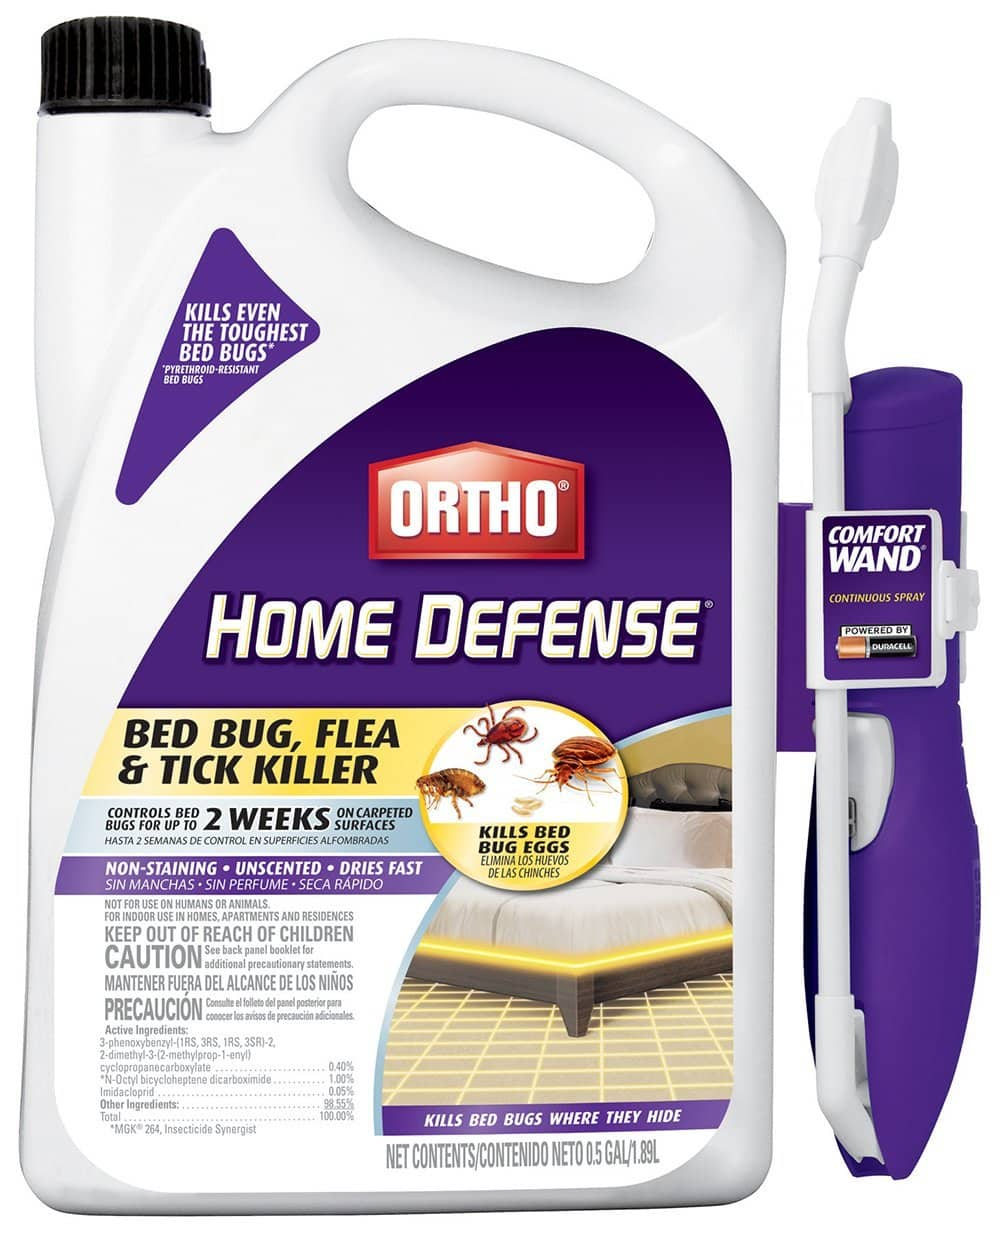 Ortho Home Defense Max Bed Bug, Flea and Tick Killer 0.5 Gal/1.89L $11.22 FS w/ Prime @Amazon